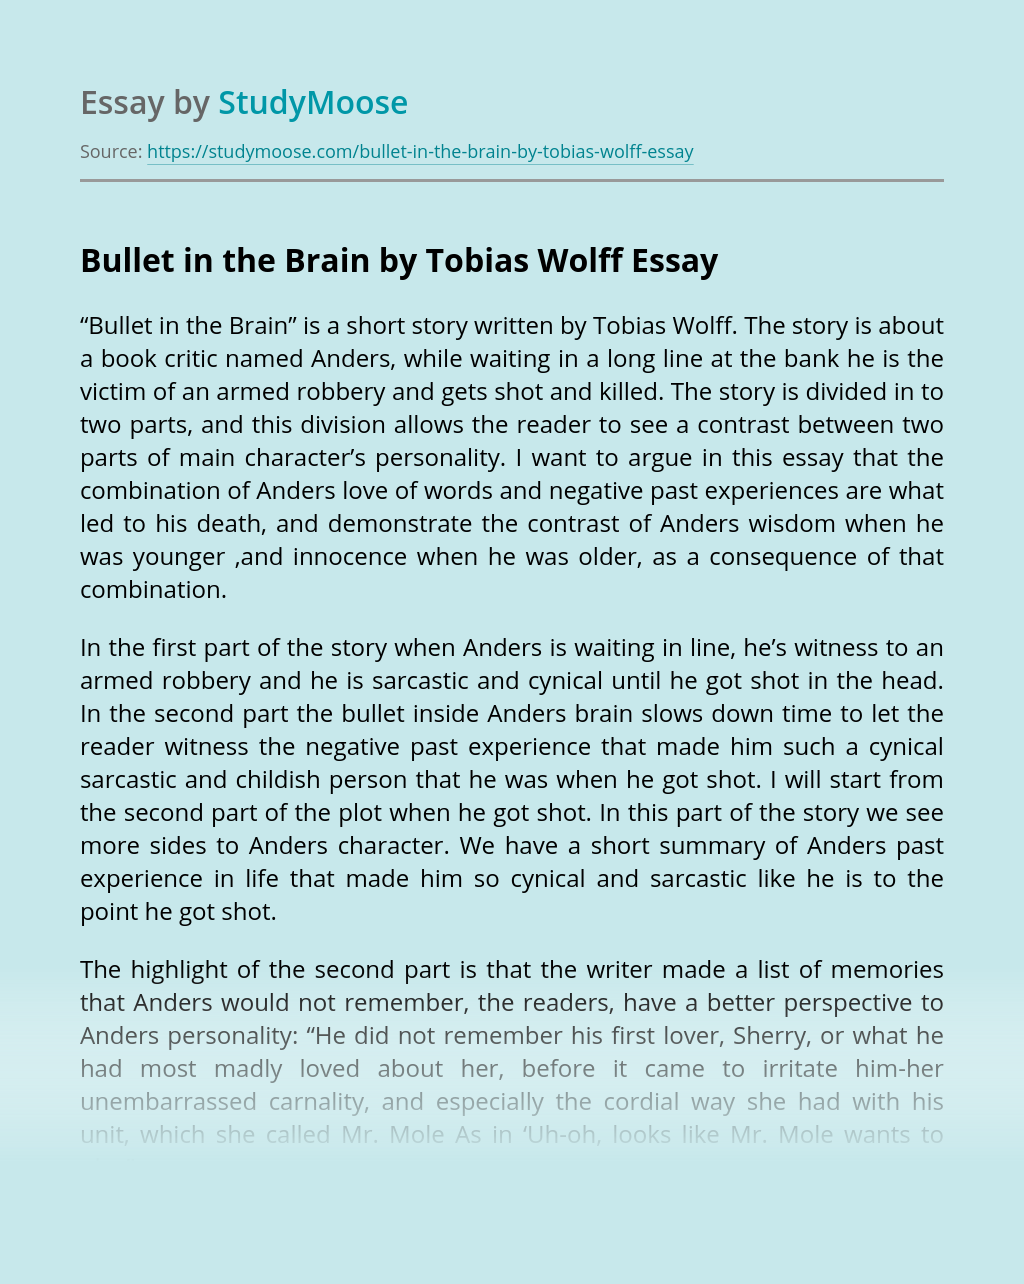 Bullet in the Brain by Tobias Wolff